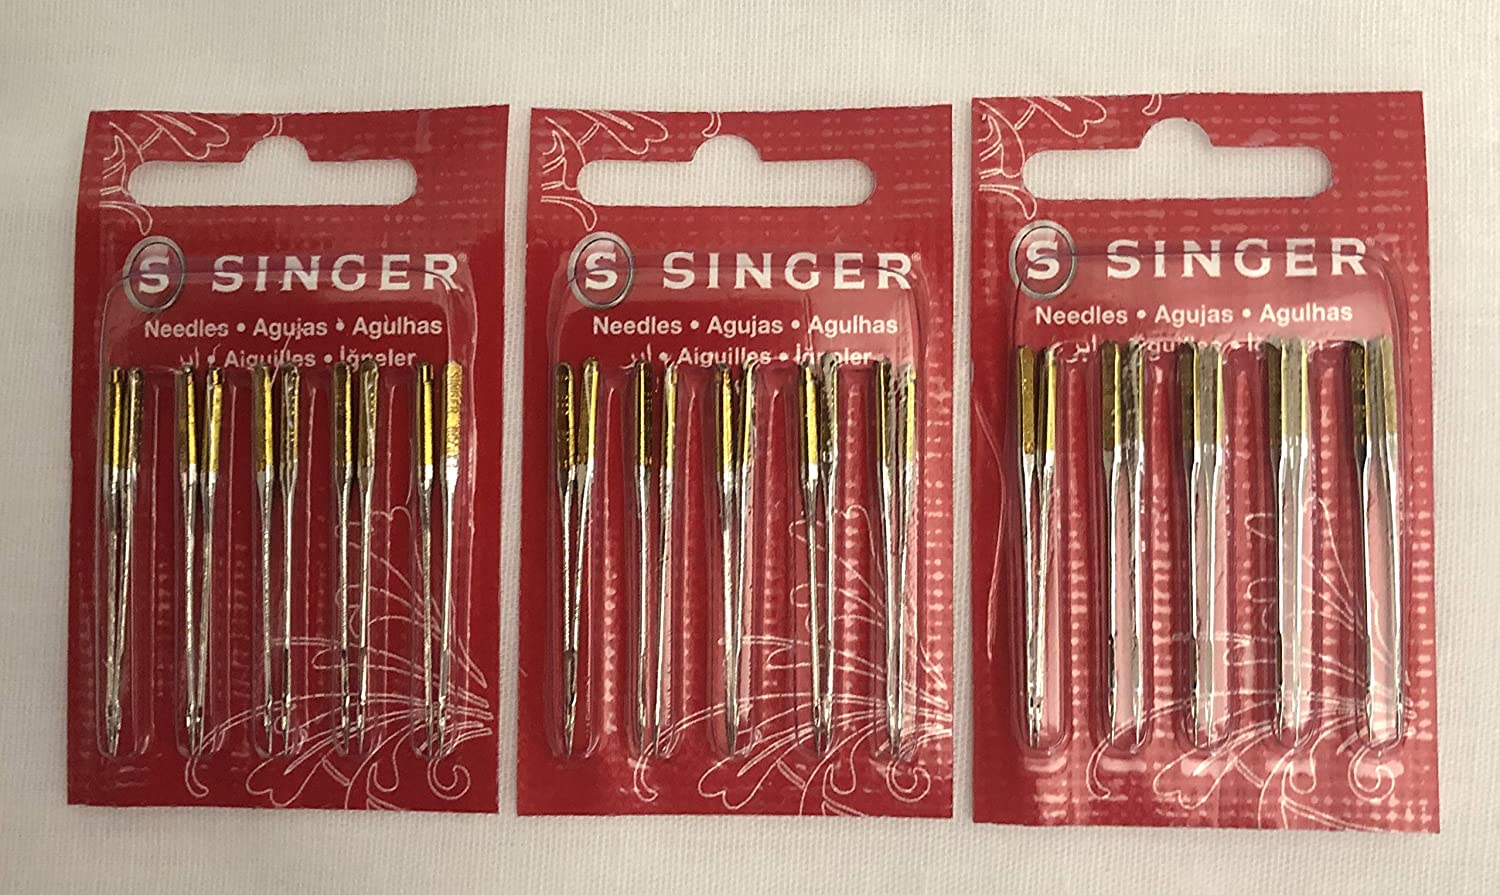 Singer Sewing Machine Needles 2045 Yellow Inexpensive Excellence Size Co Band 30 80 11